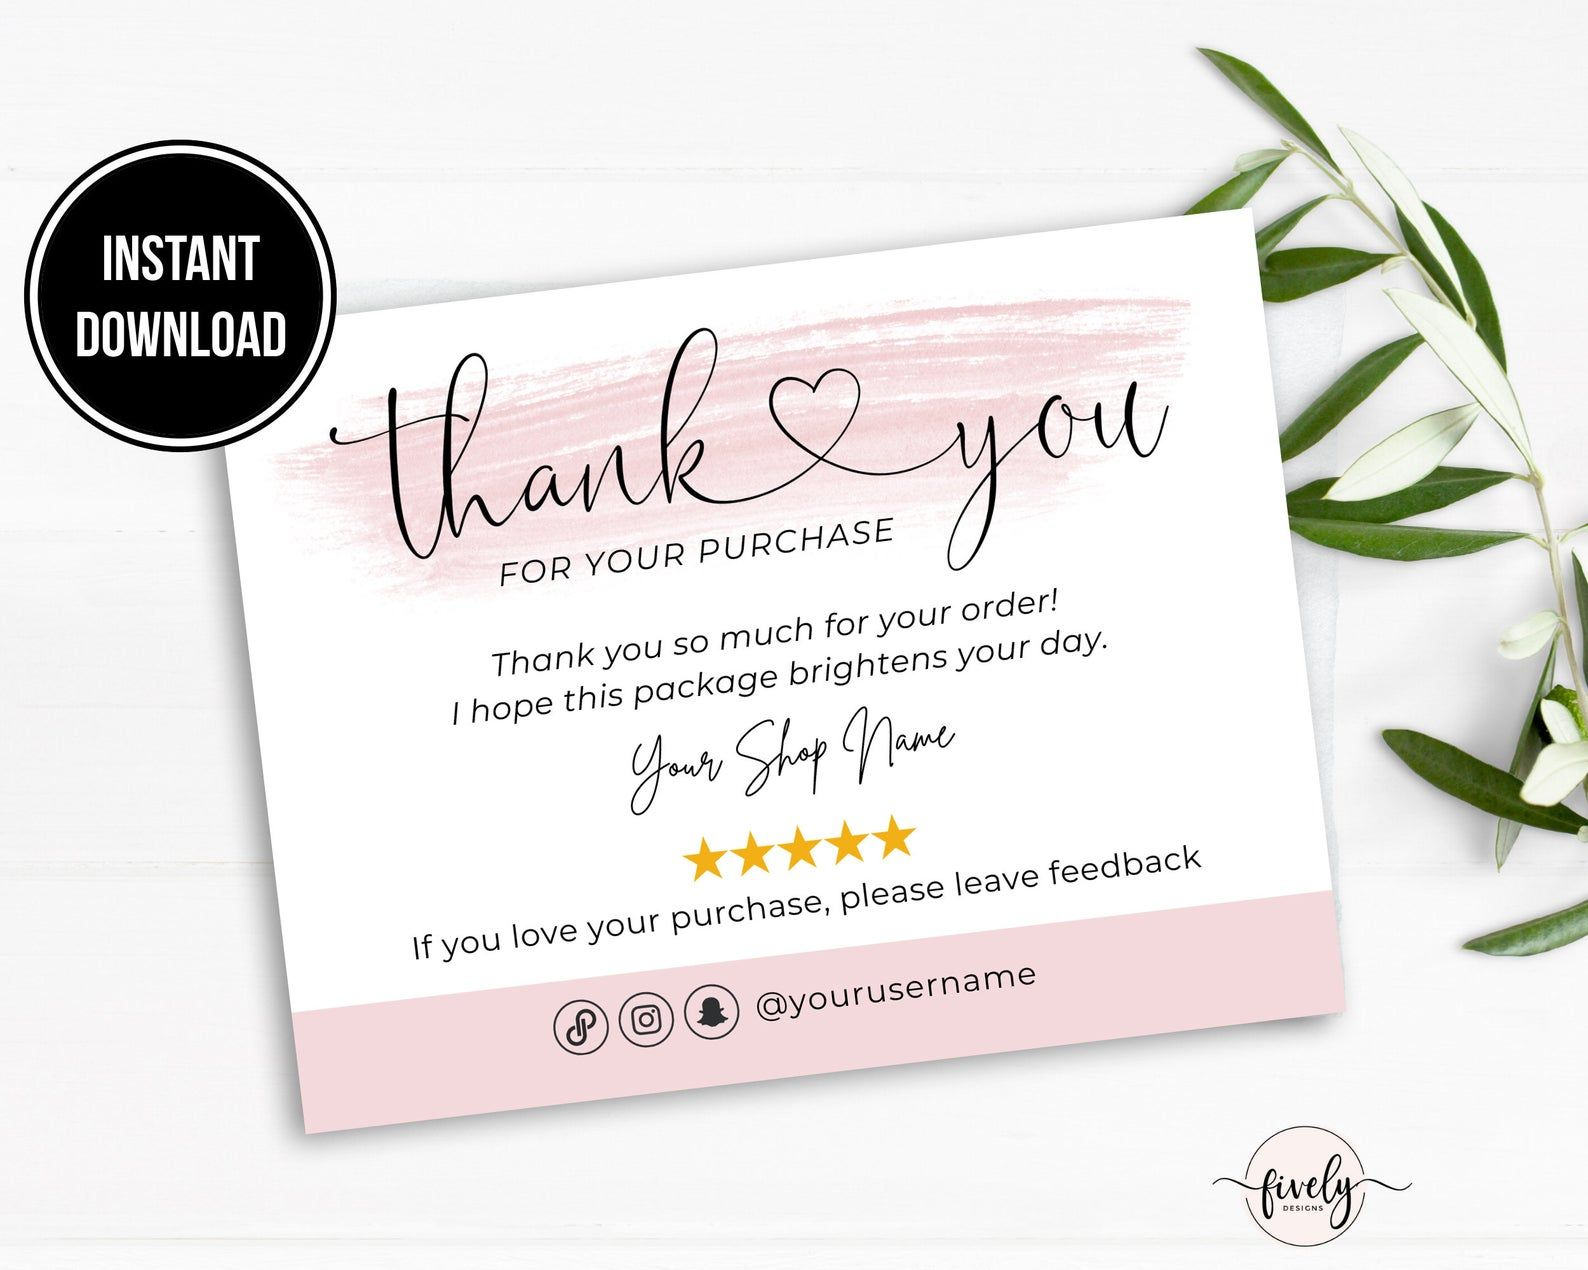 Poshmark Thank You Card Template Business Thank You Note Etsy Thank You Note Printable Thank You Note Ideas Packaging Insert For Customer Thank You Card Template Business Thank You Notes Thank